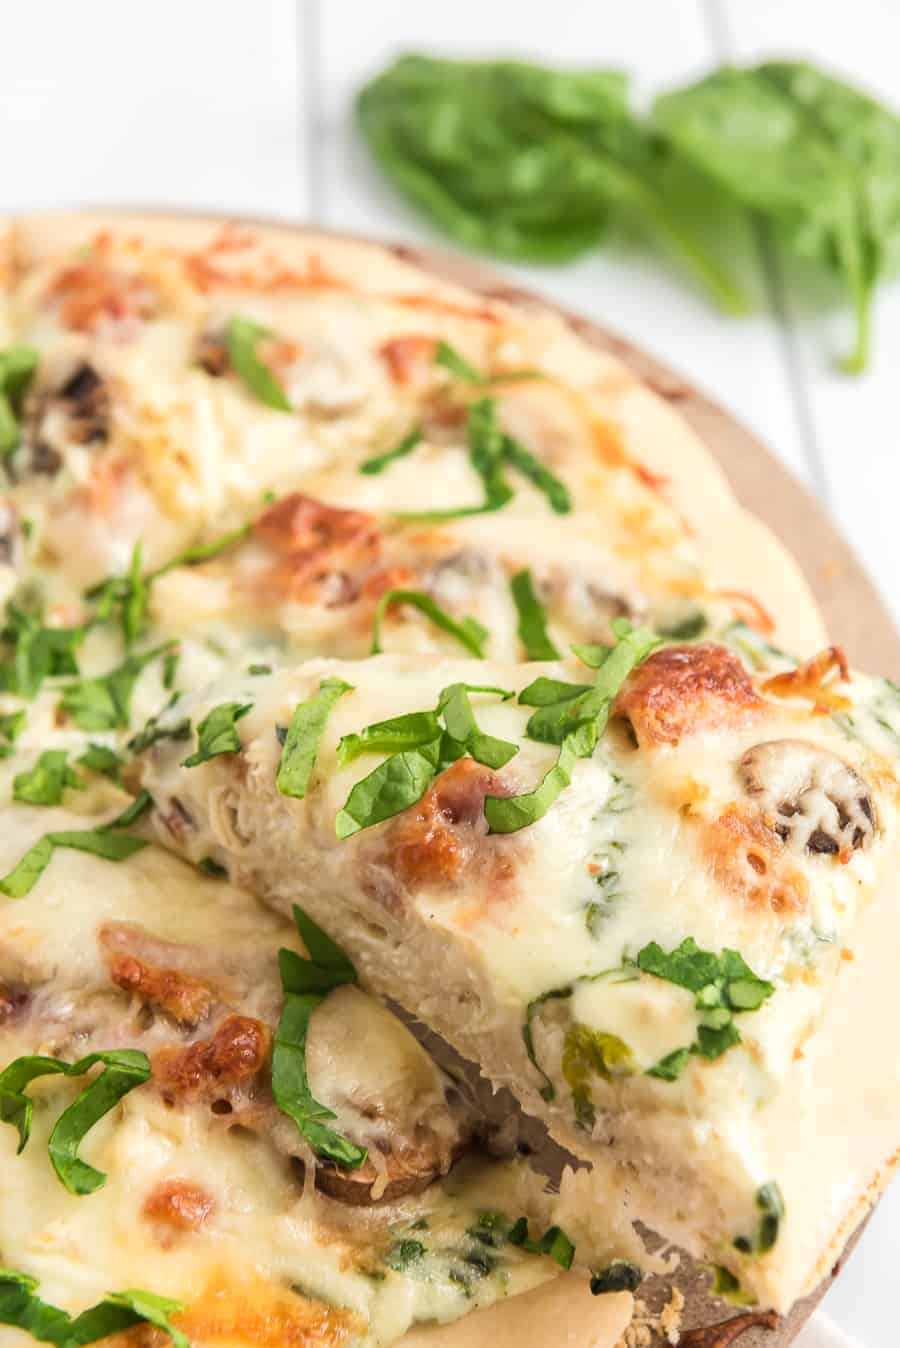 Take your homemade pizza to new heights with this recipe featuring chicken, bacon, and mushrooms slathered in melted cheese and creamy sauce.